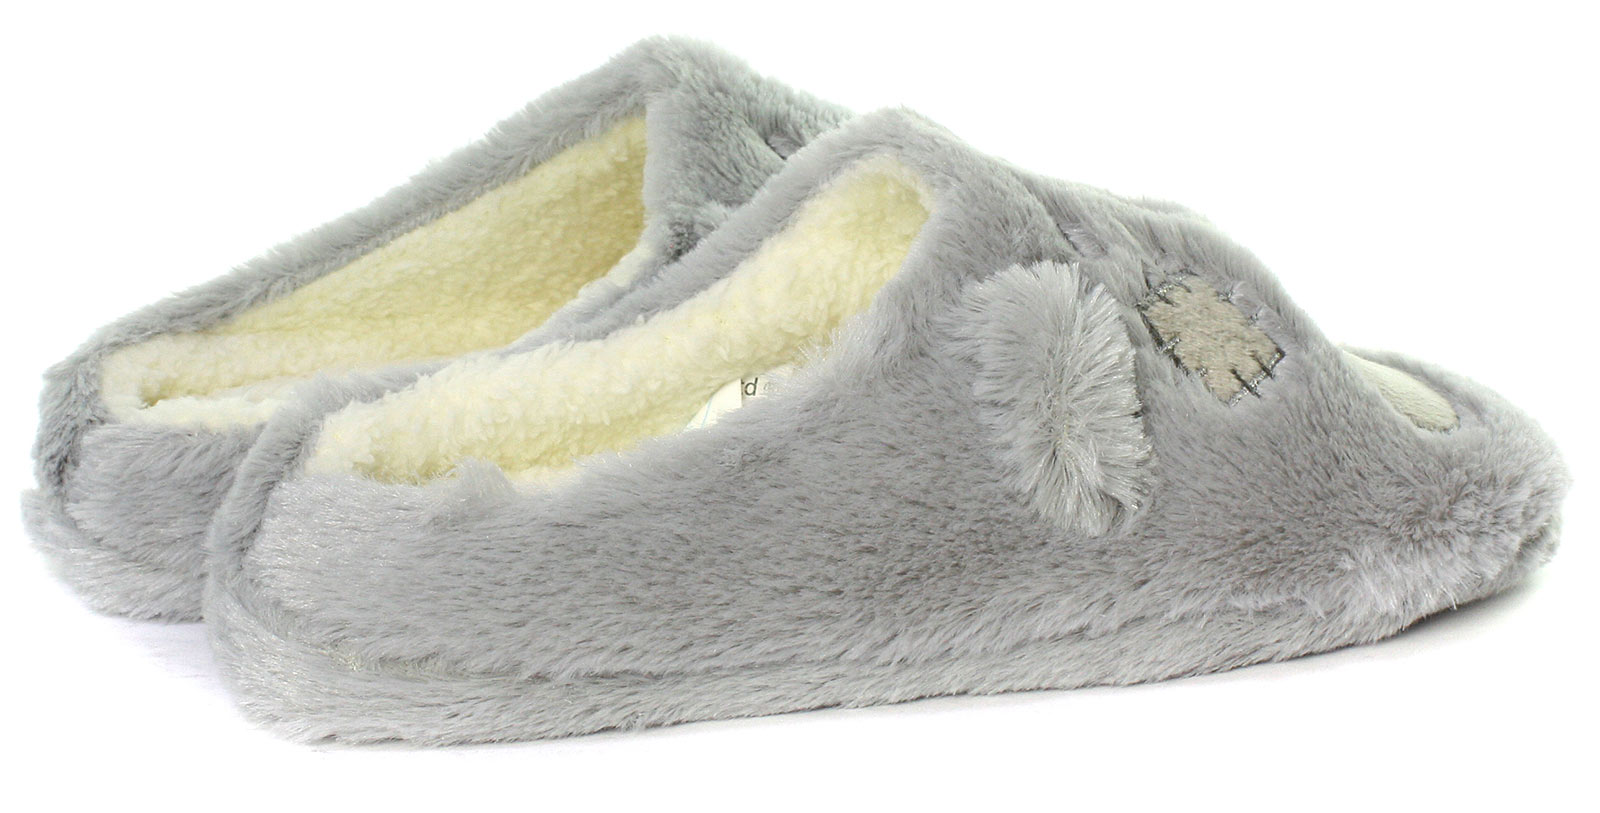 New-Me-to-You-Tatty-Teddy-Womens-Novelty-Mule-Slippers-ALL-SIZES thumbnail 3